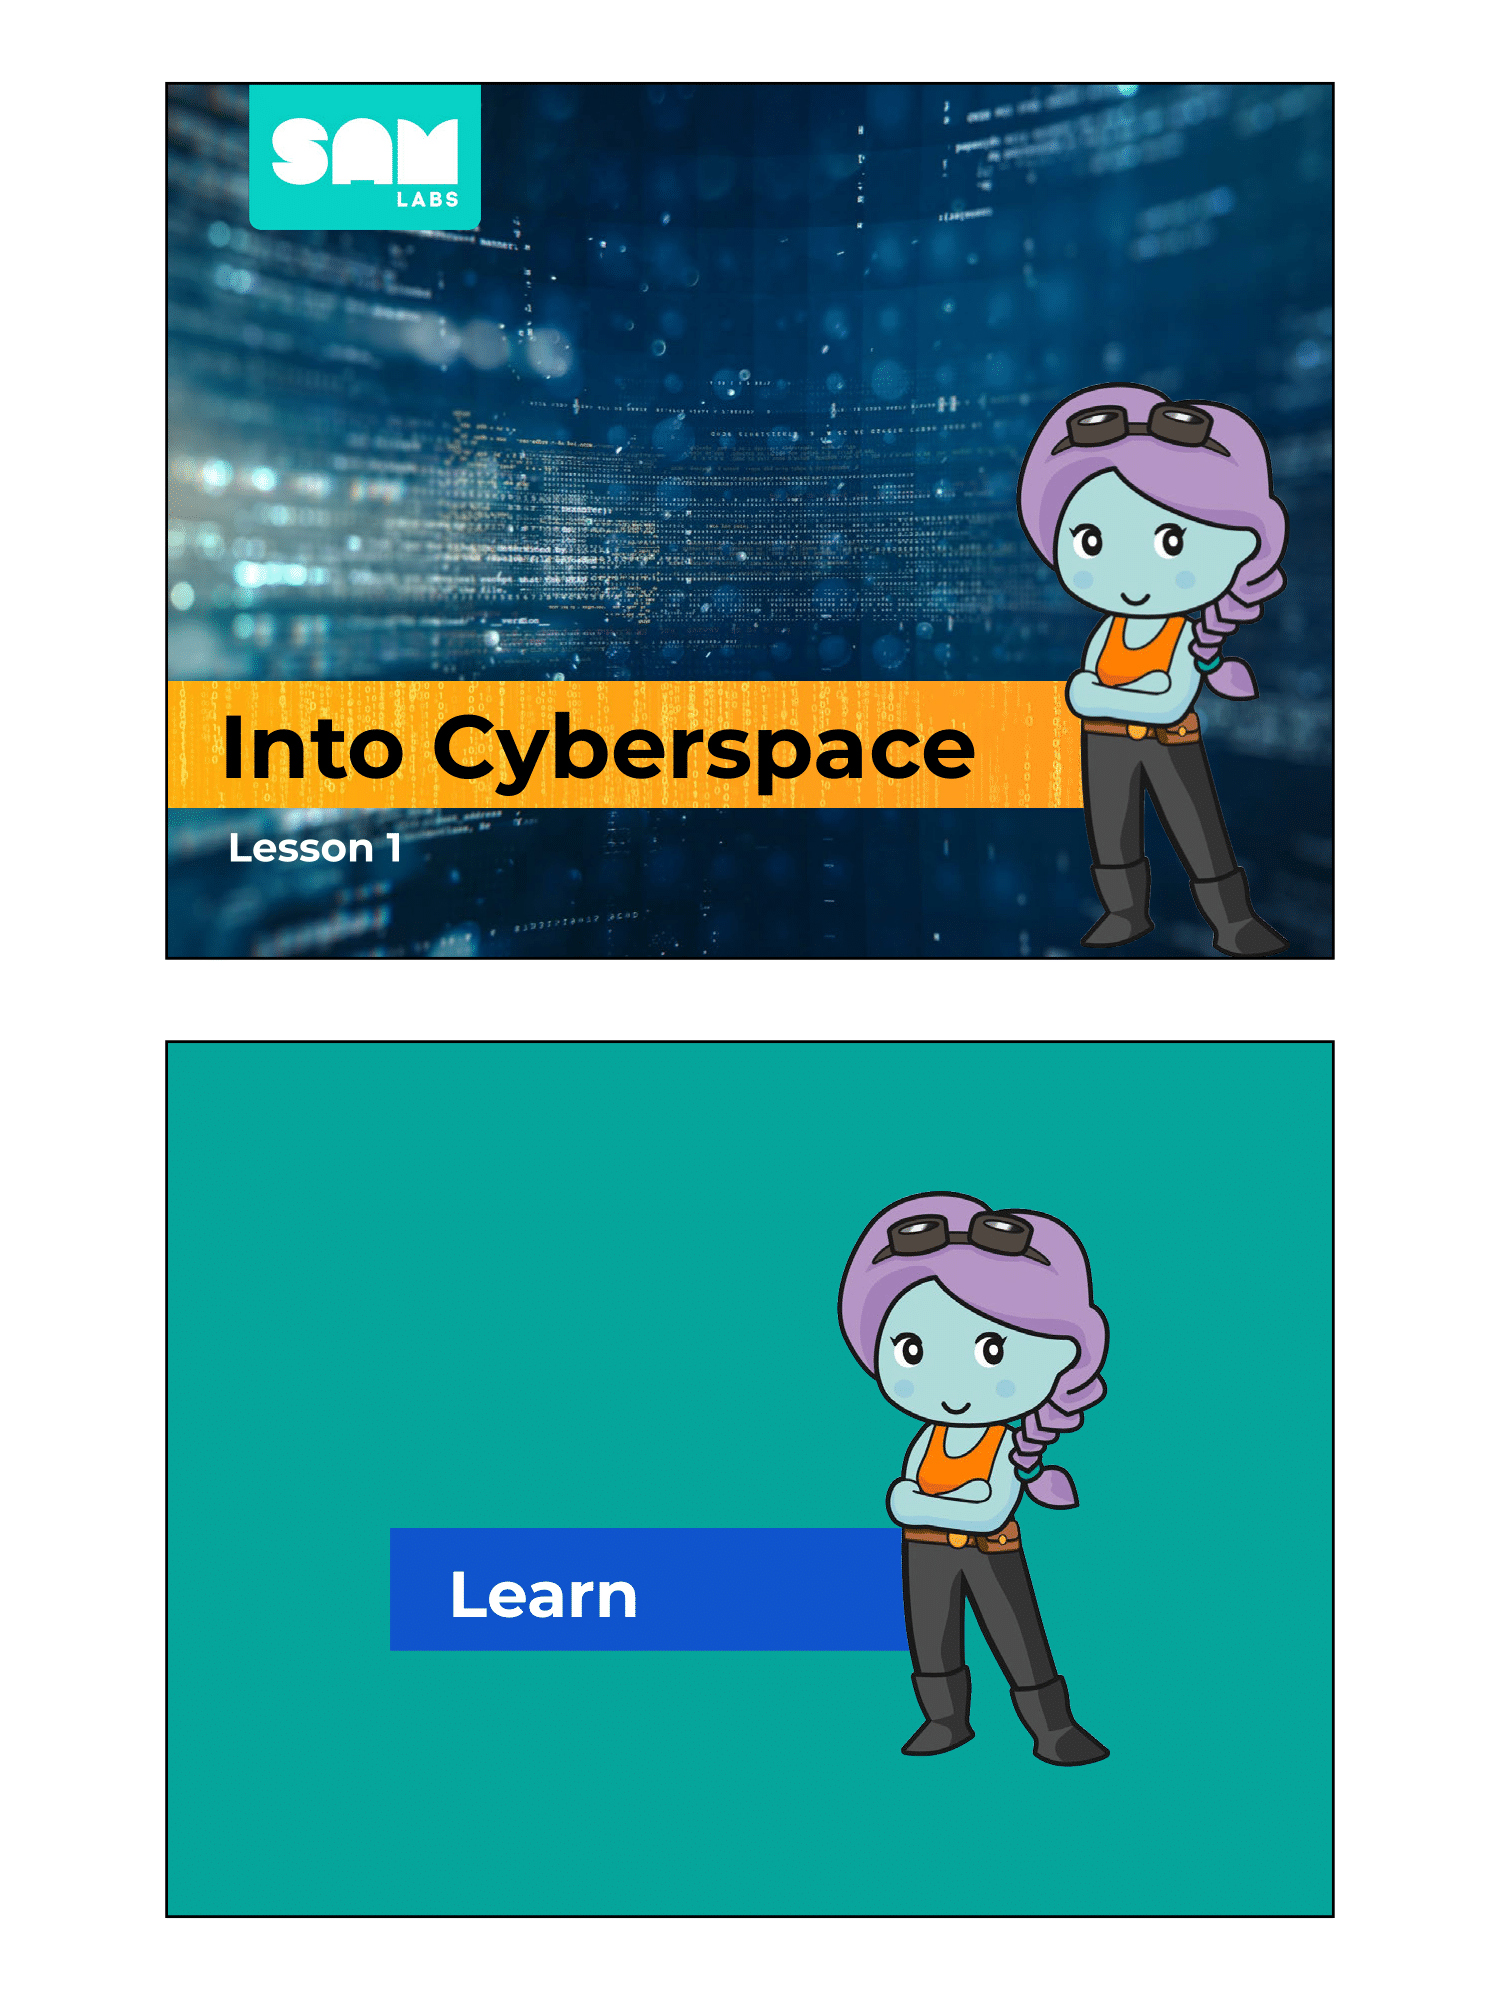 LEARN_TO_CODE_Grade_4_Lesson_1_Into_Cyberspace_Lesson_Slides-01.png